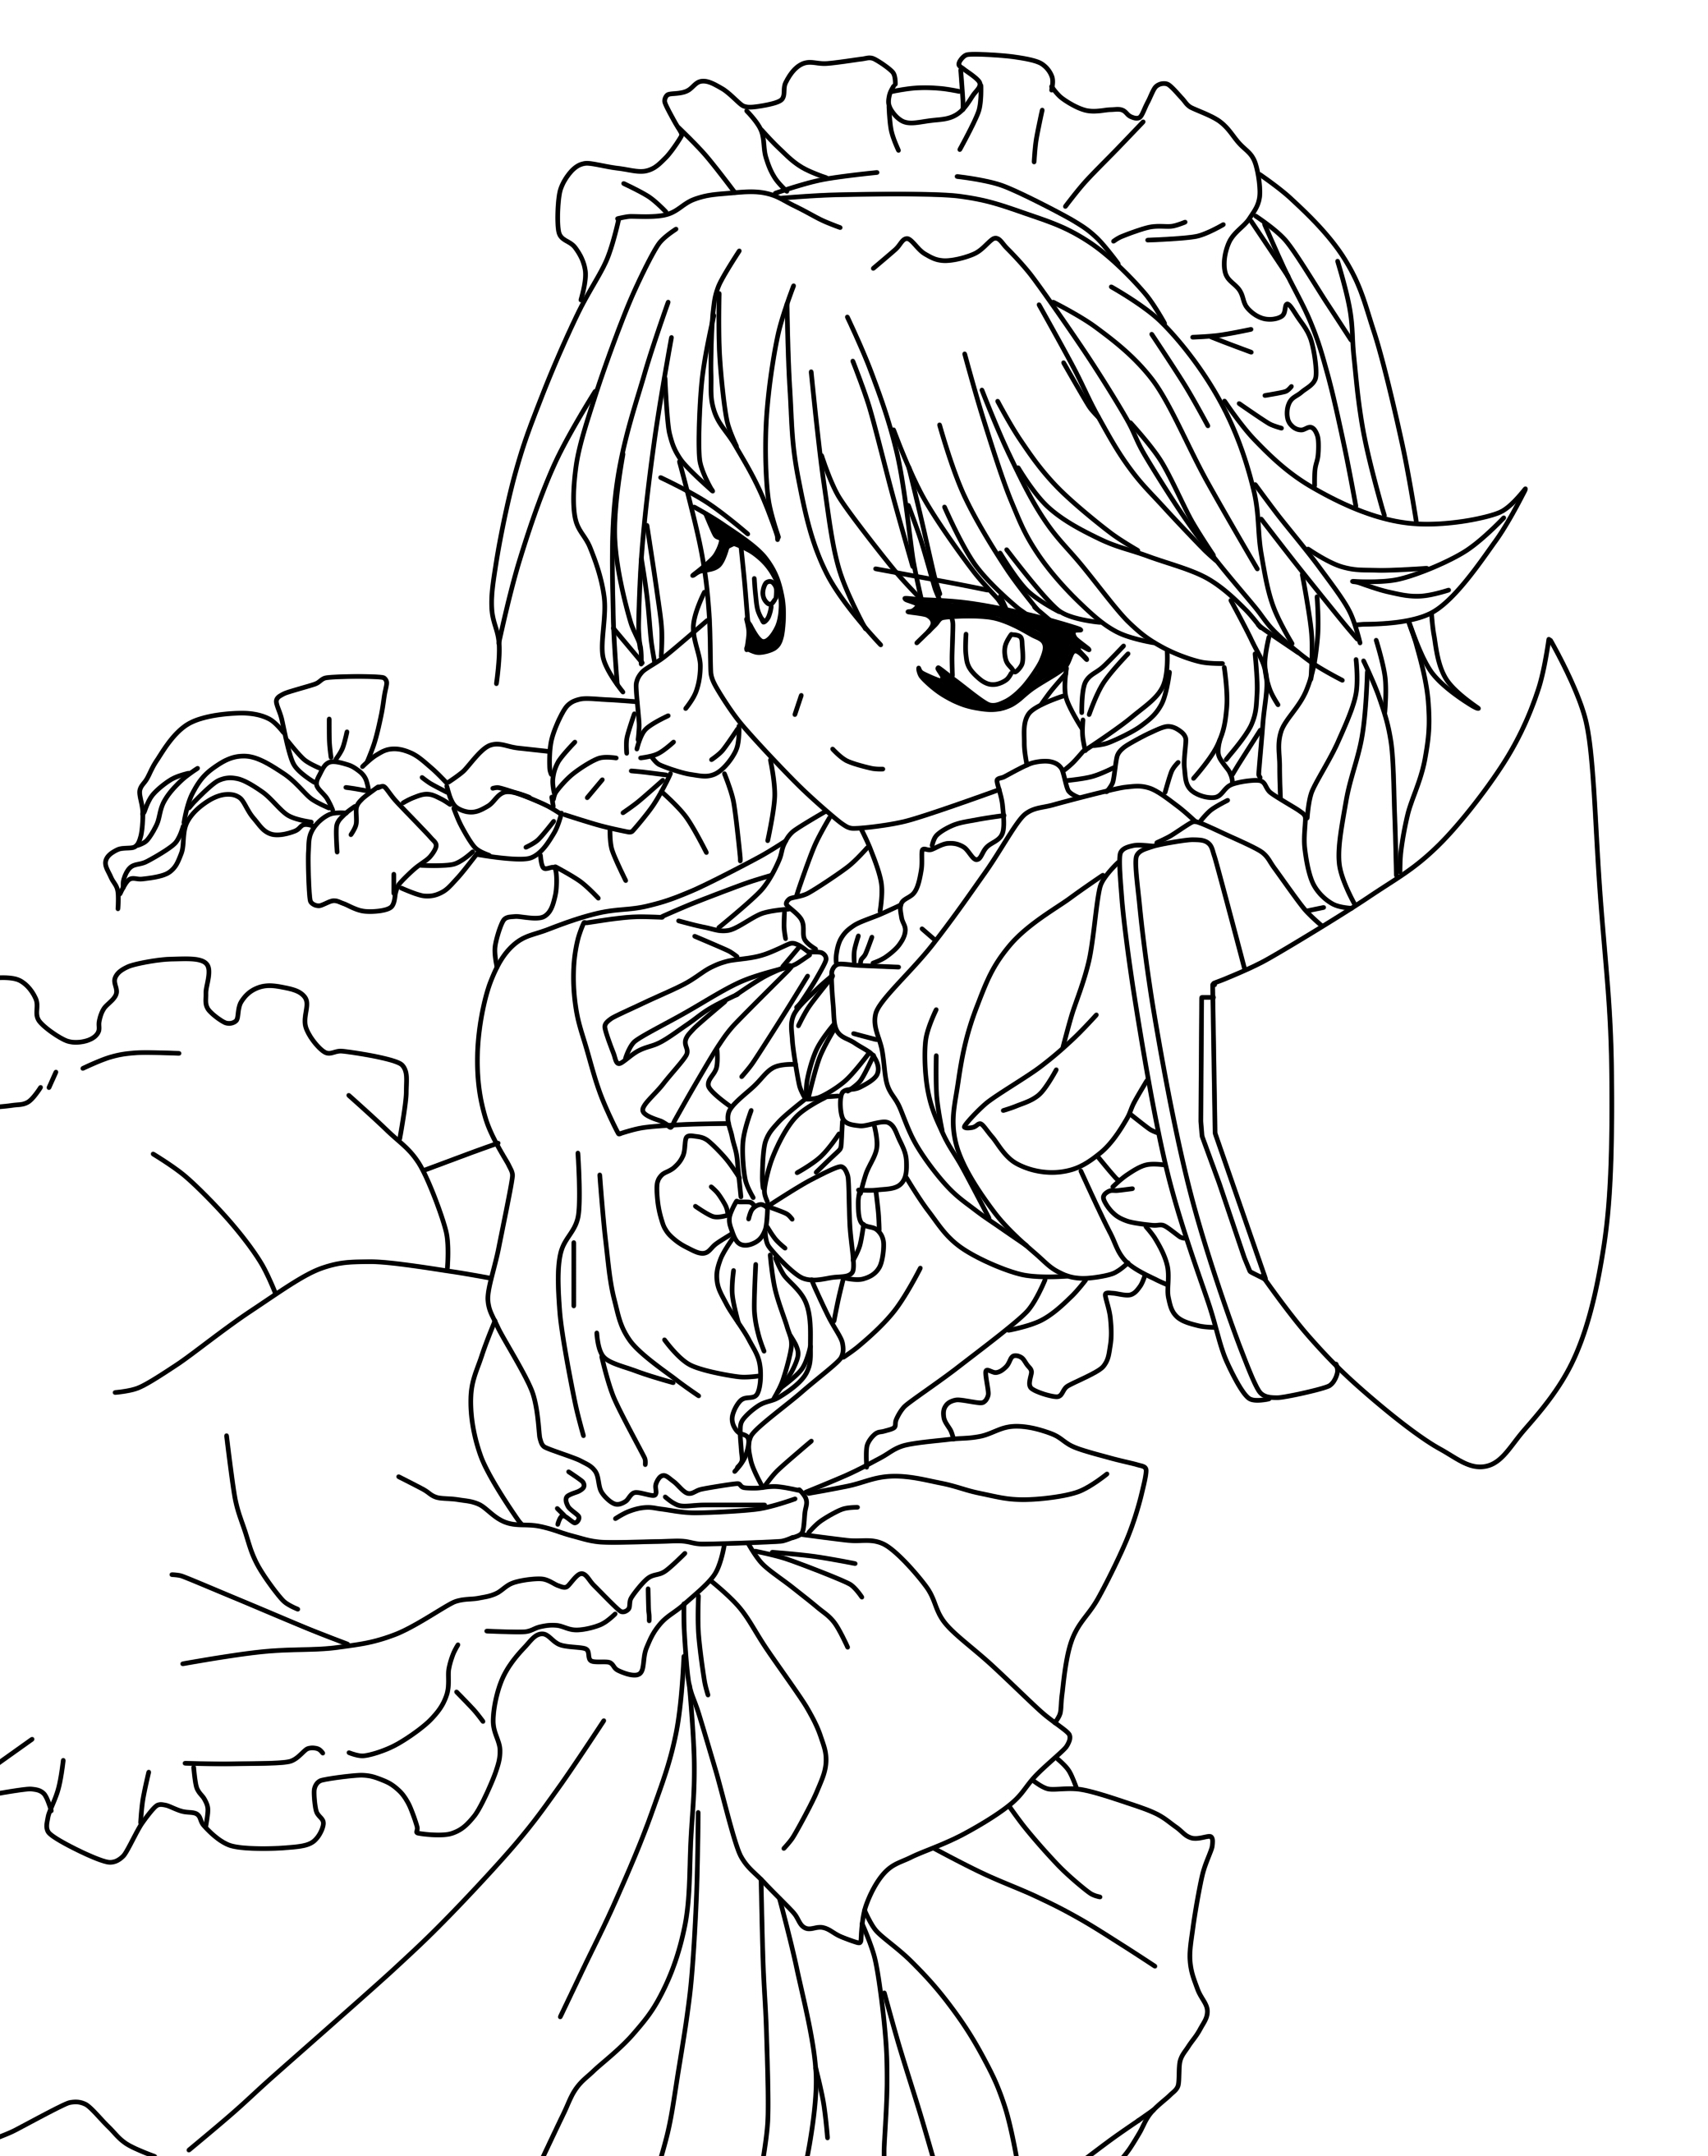 coloring pages of anime anime wolf girl coloring pages coloring pages for children pages anime of coloring